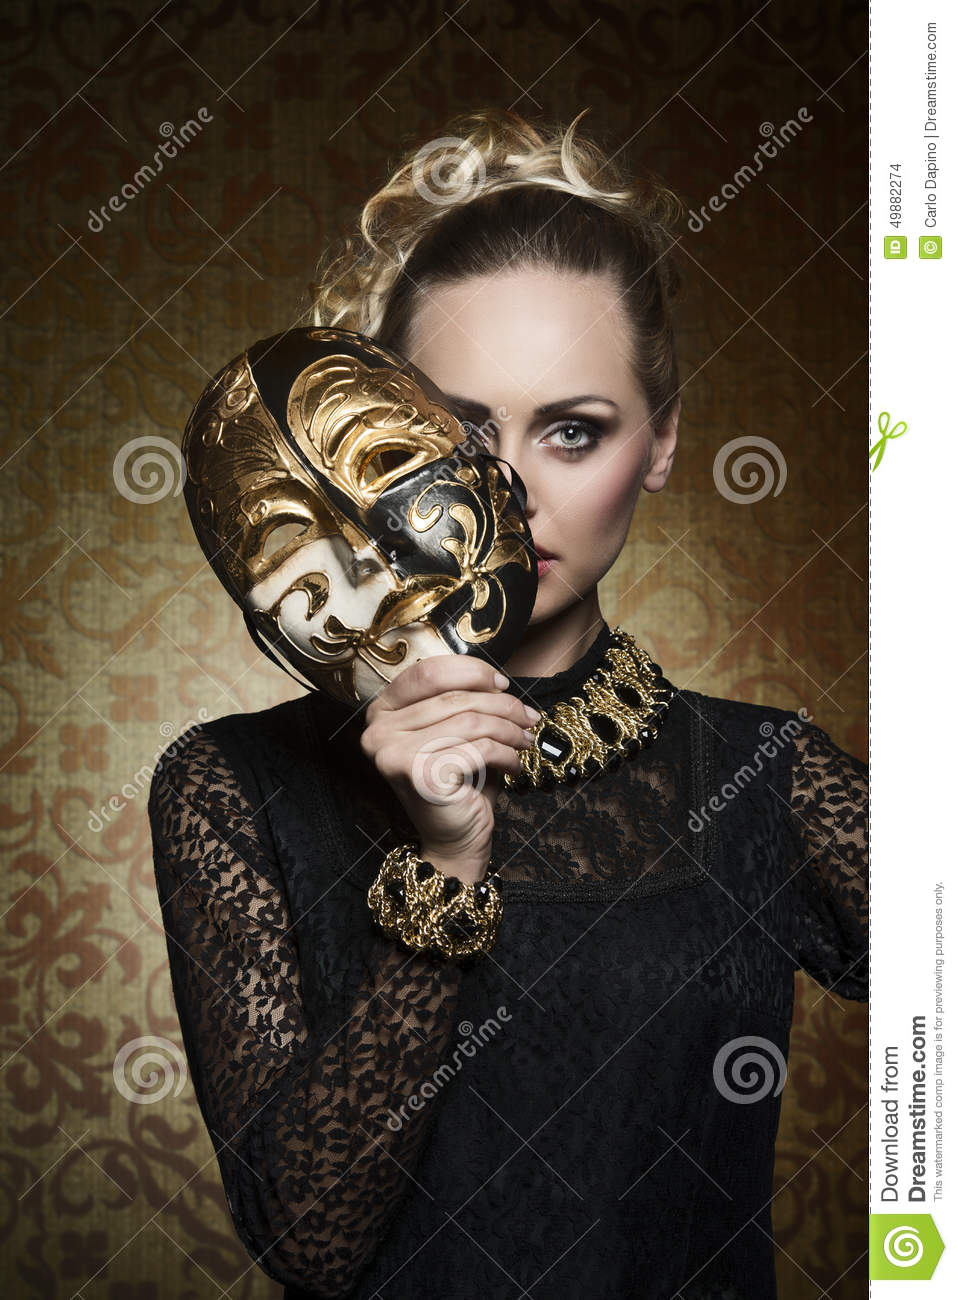 Download Antique Lady With Gothic Mask Stock Photo - Image of aristocrat, caucasian: 49882274